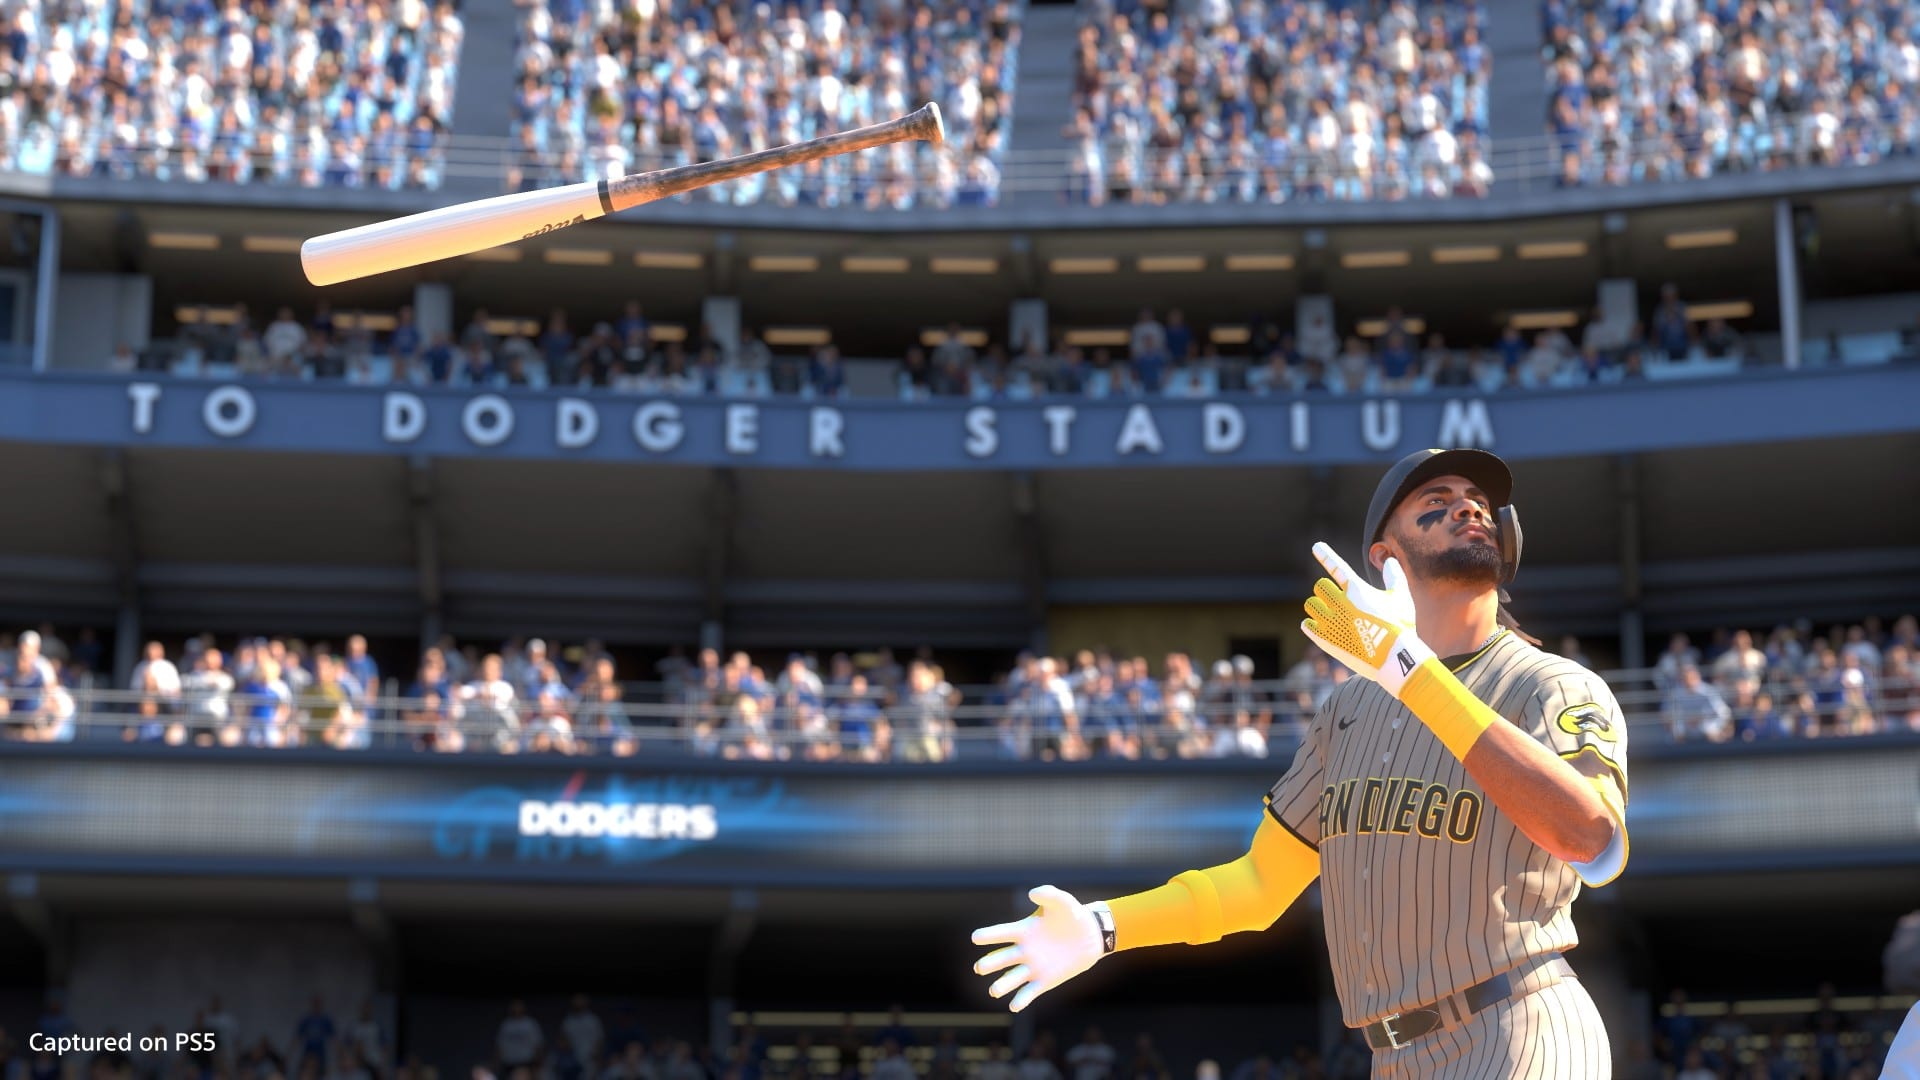 how to equip equipment, mlb the show 21